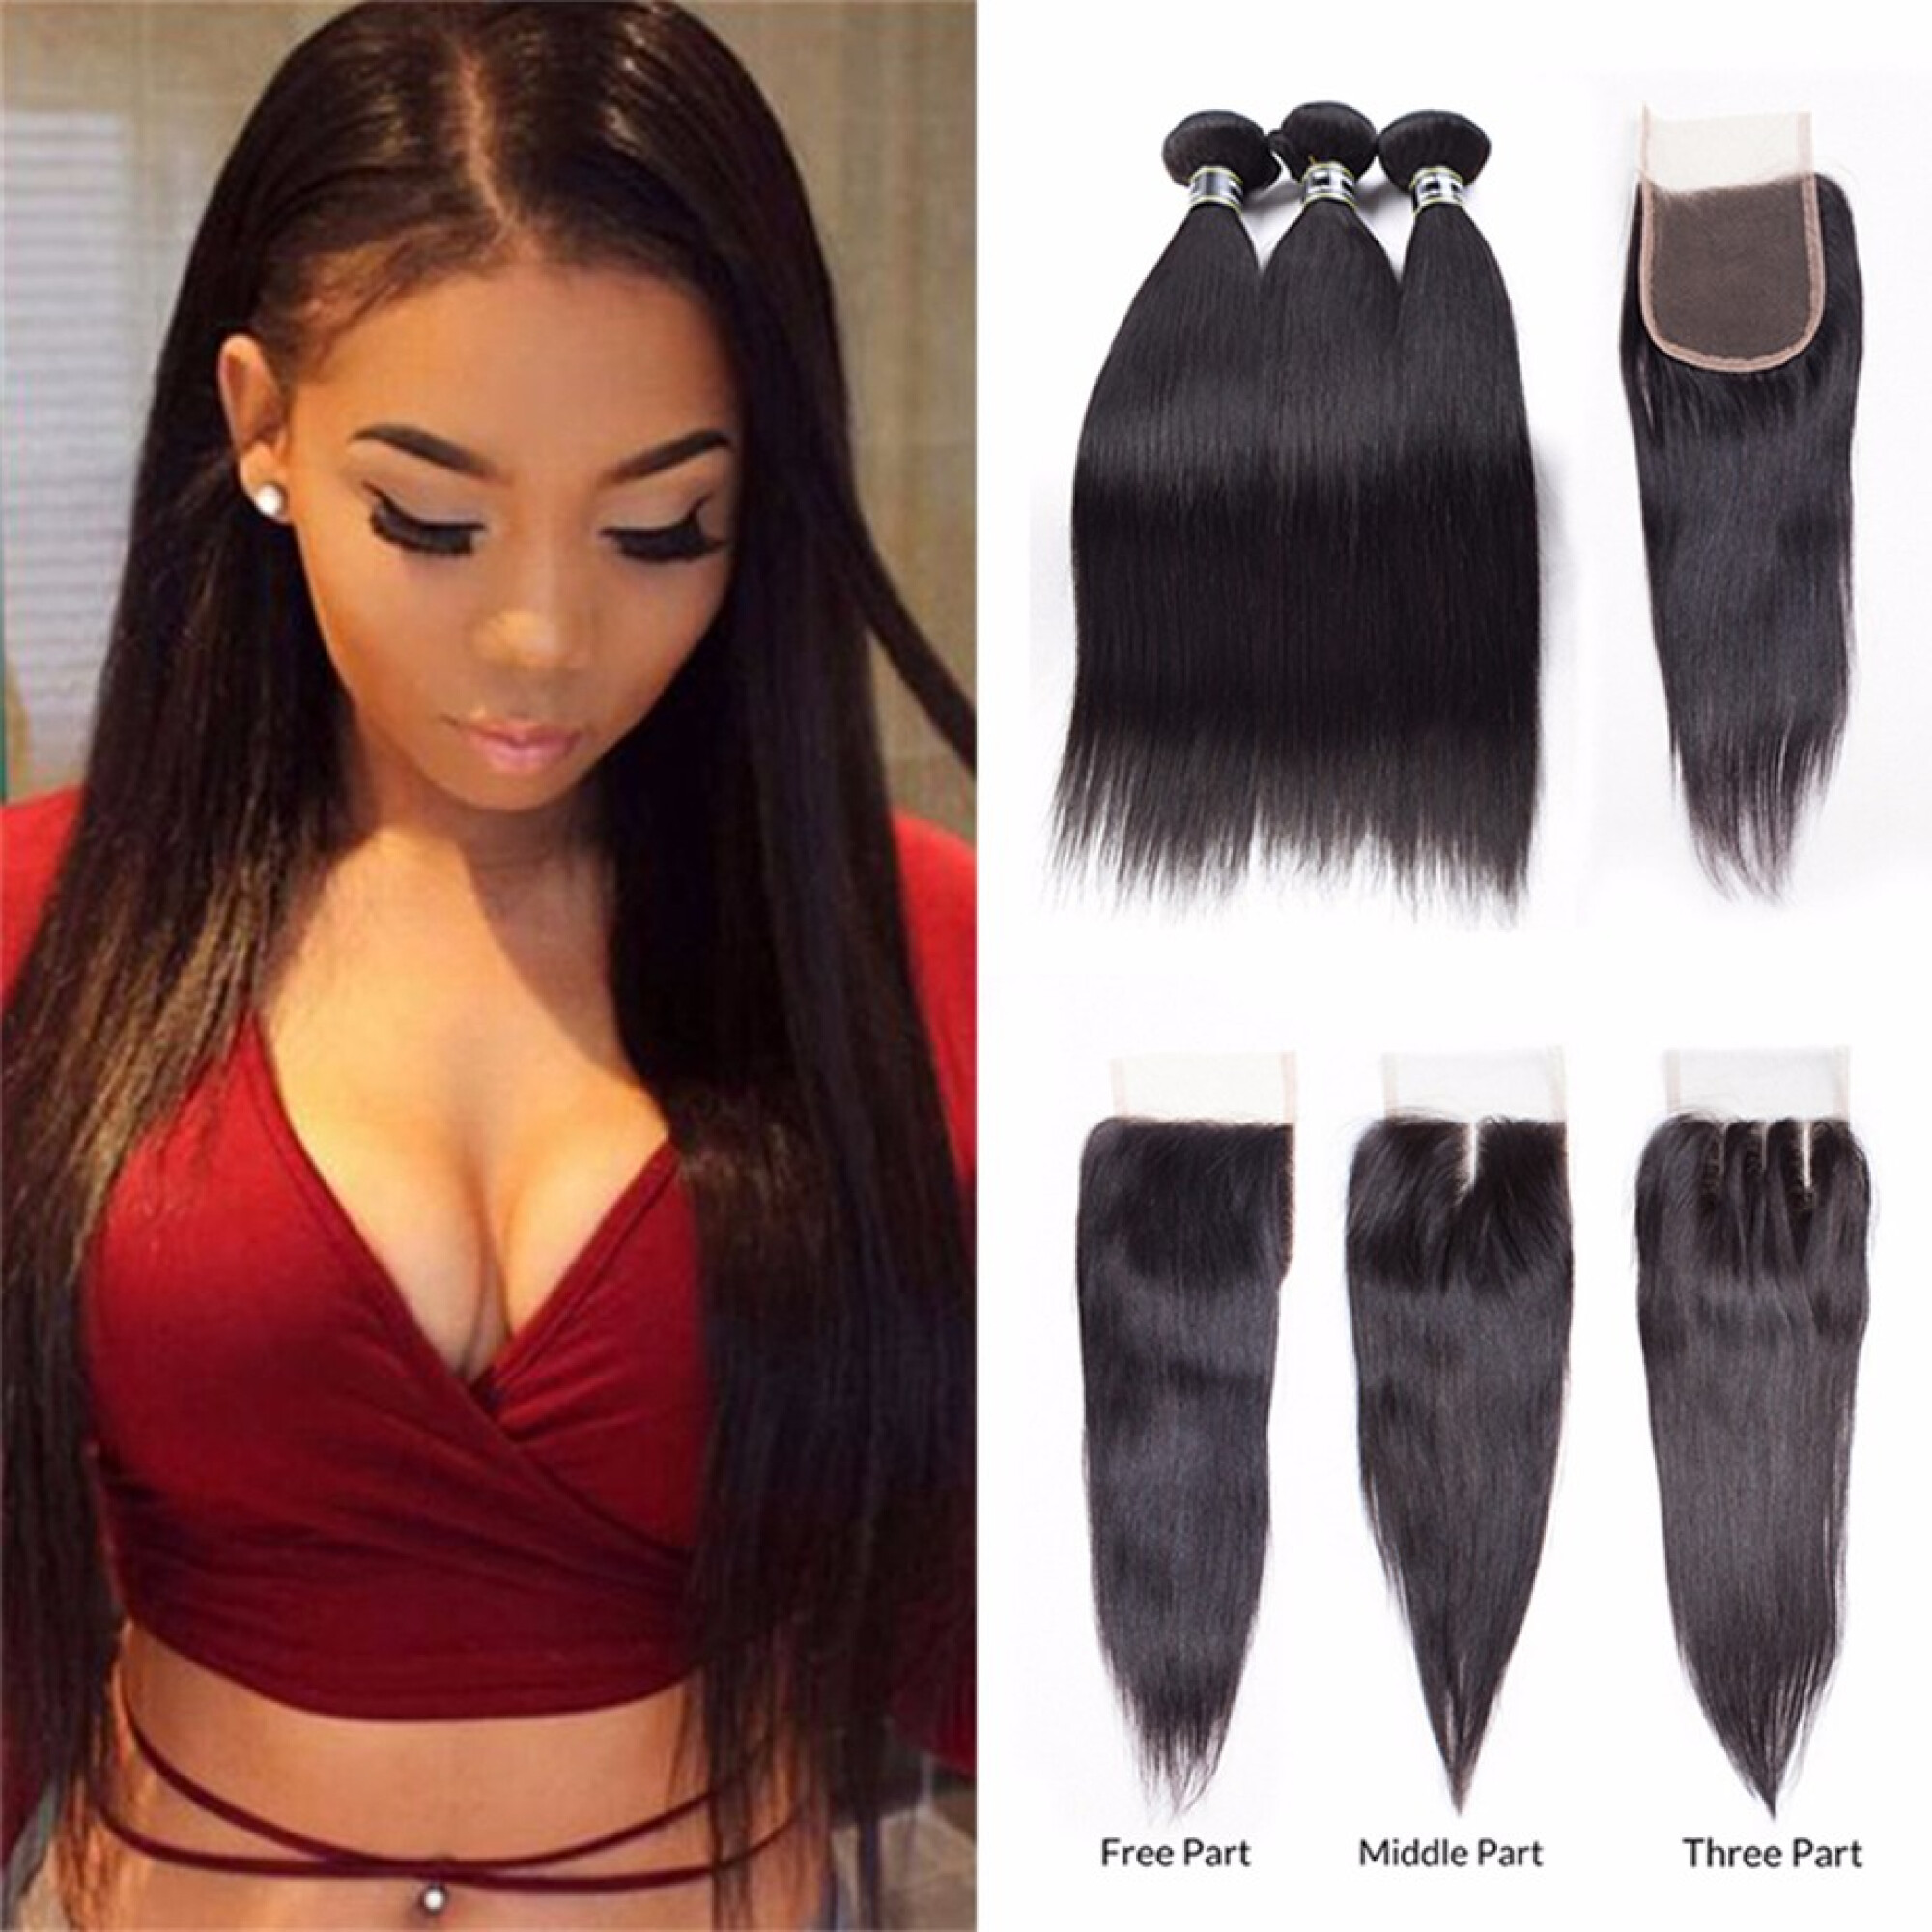 """Amazing Star Straight Hair 3 Bundles with Closure Free Part Indian Virgin Human Hair Weave, 16""""18""""20"""" with 16"""""""